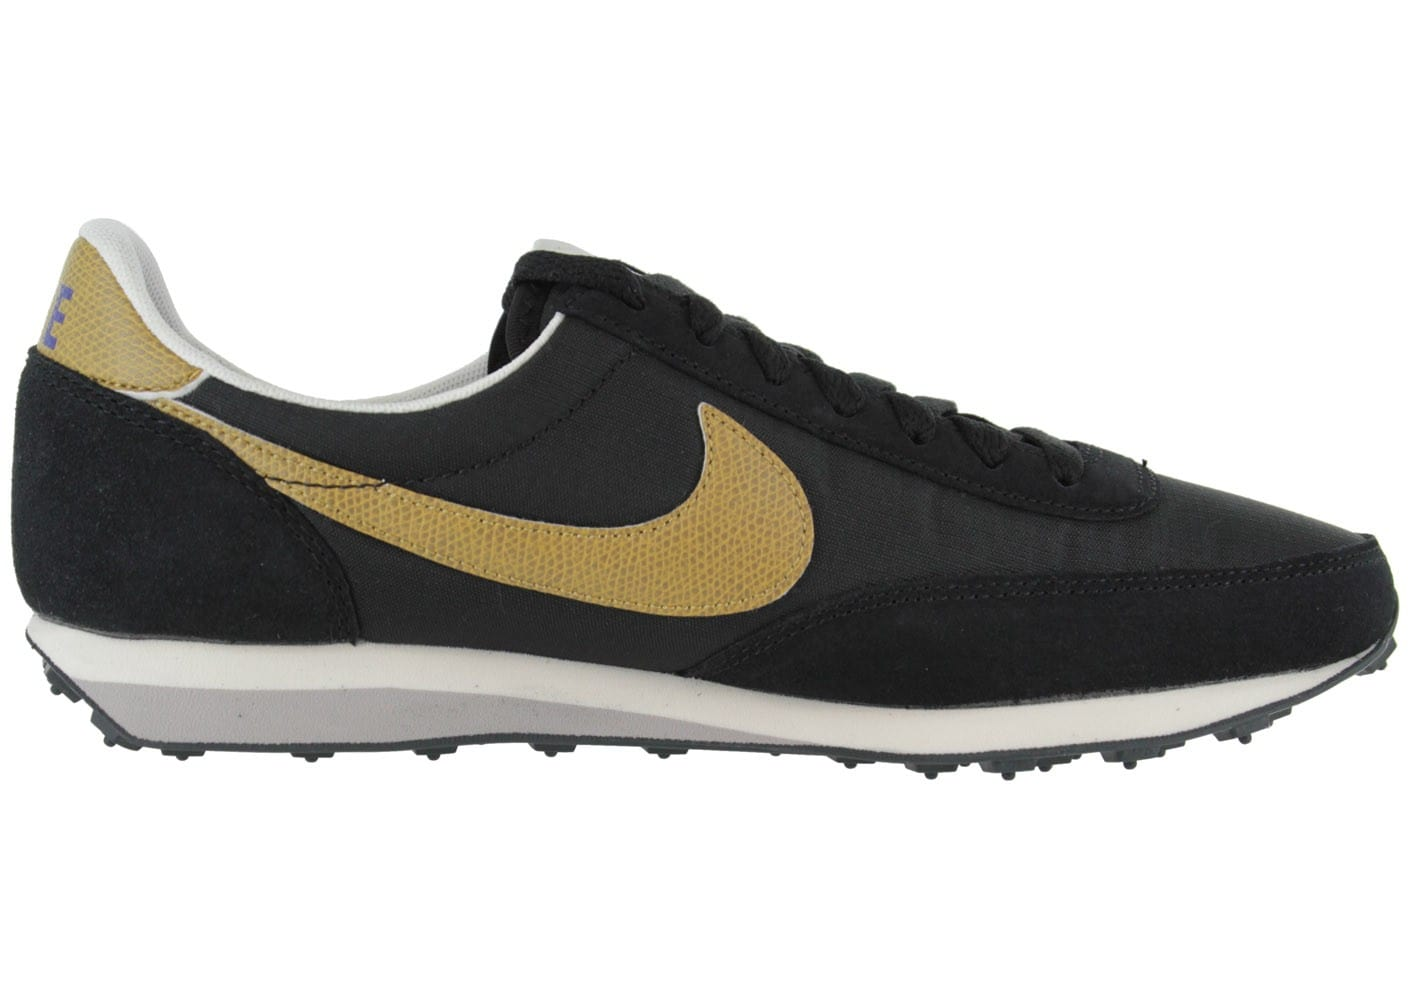 sports shoes e2656 91f7c Elite Homme Noir Baskets Nike Chausport Chaussures Or OZfwgZnPvq;